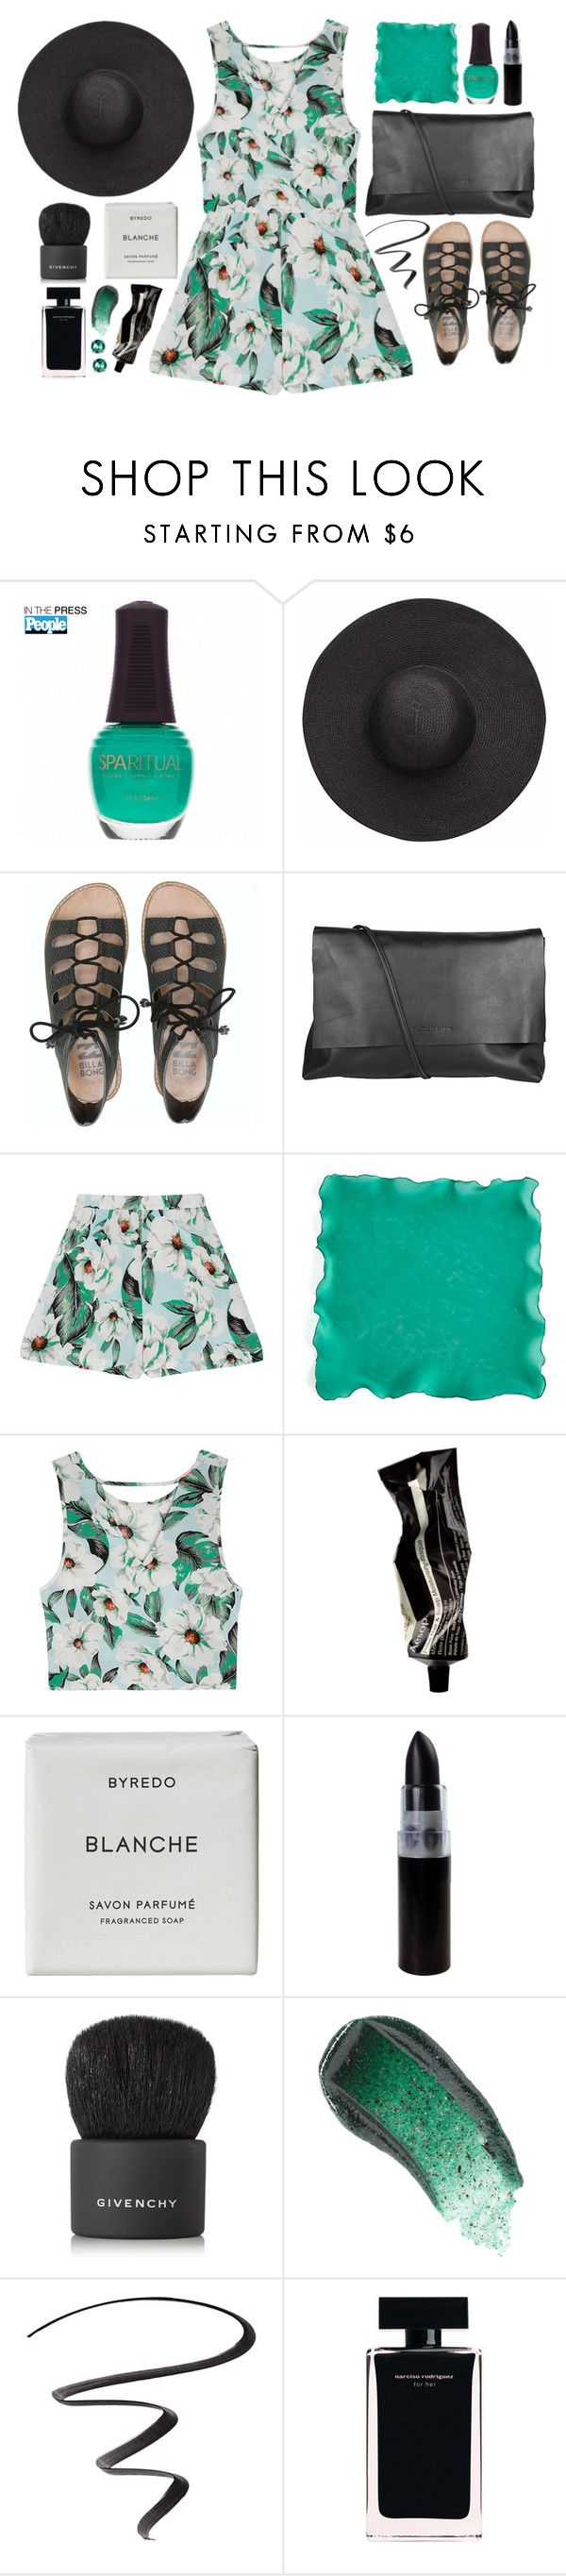 """Prague"" by via-m ❤ liked on Polyvore featuring SpaRitual, Witchery, Billabong, Arlington Milne, MINKPINK, Kim Seybert, Aesop, Byredo, Givenchy and Omorovicza"